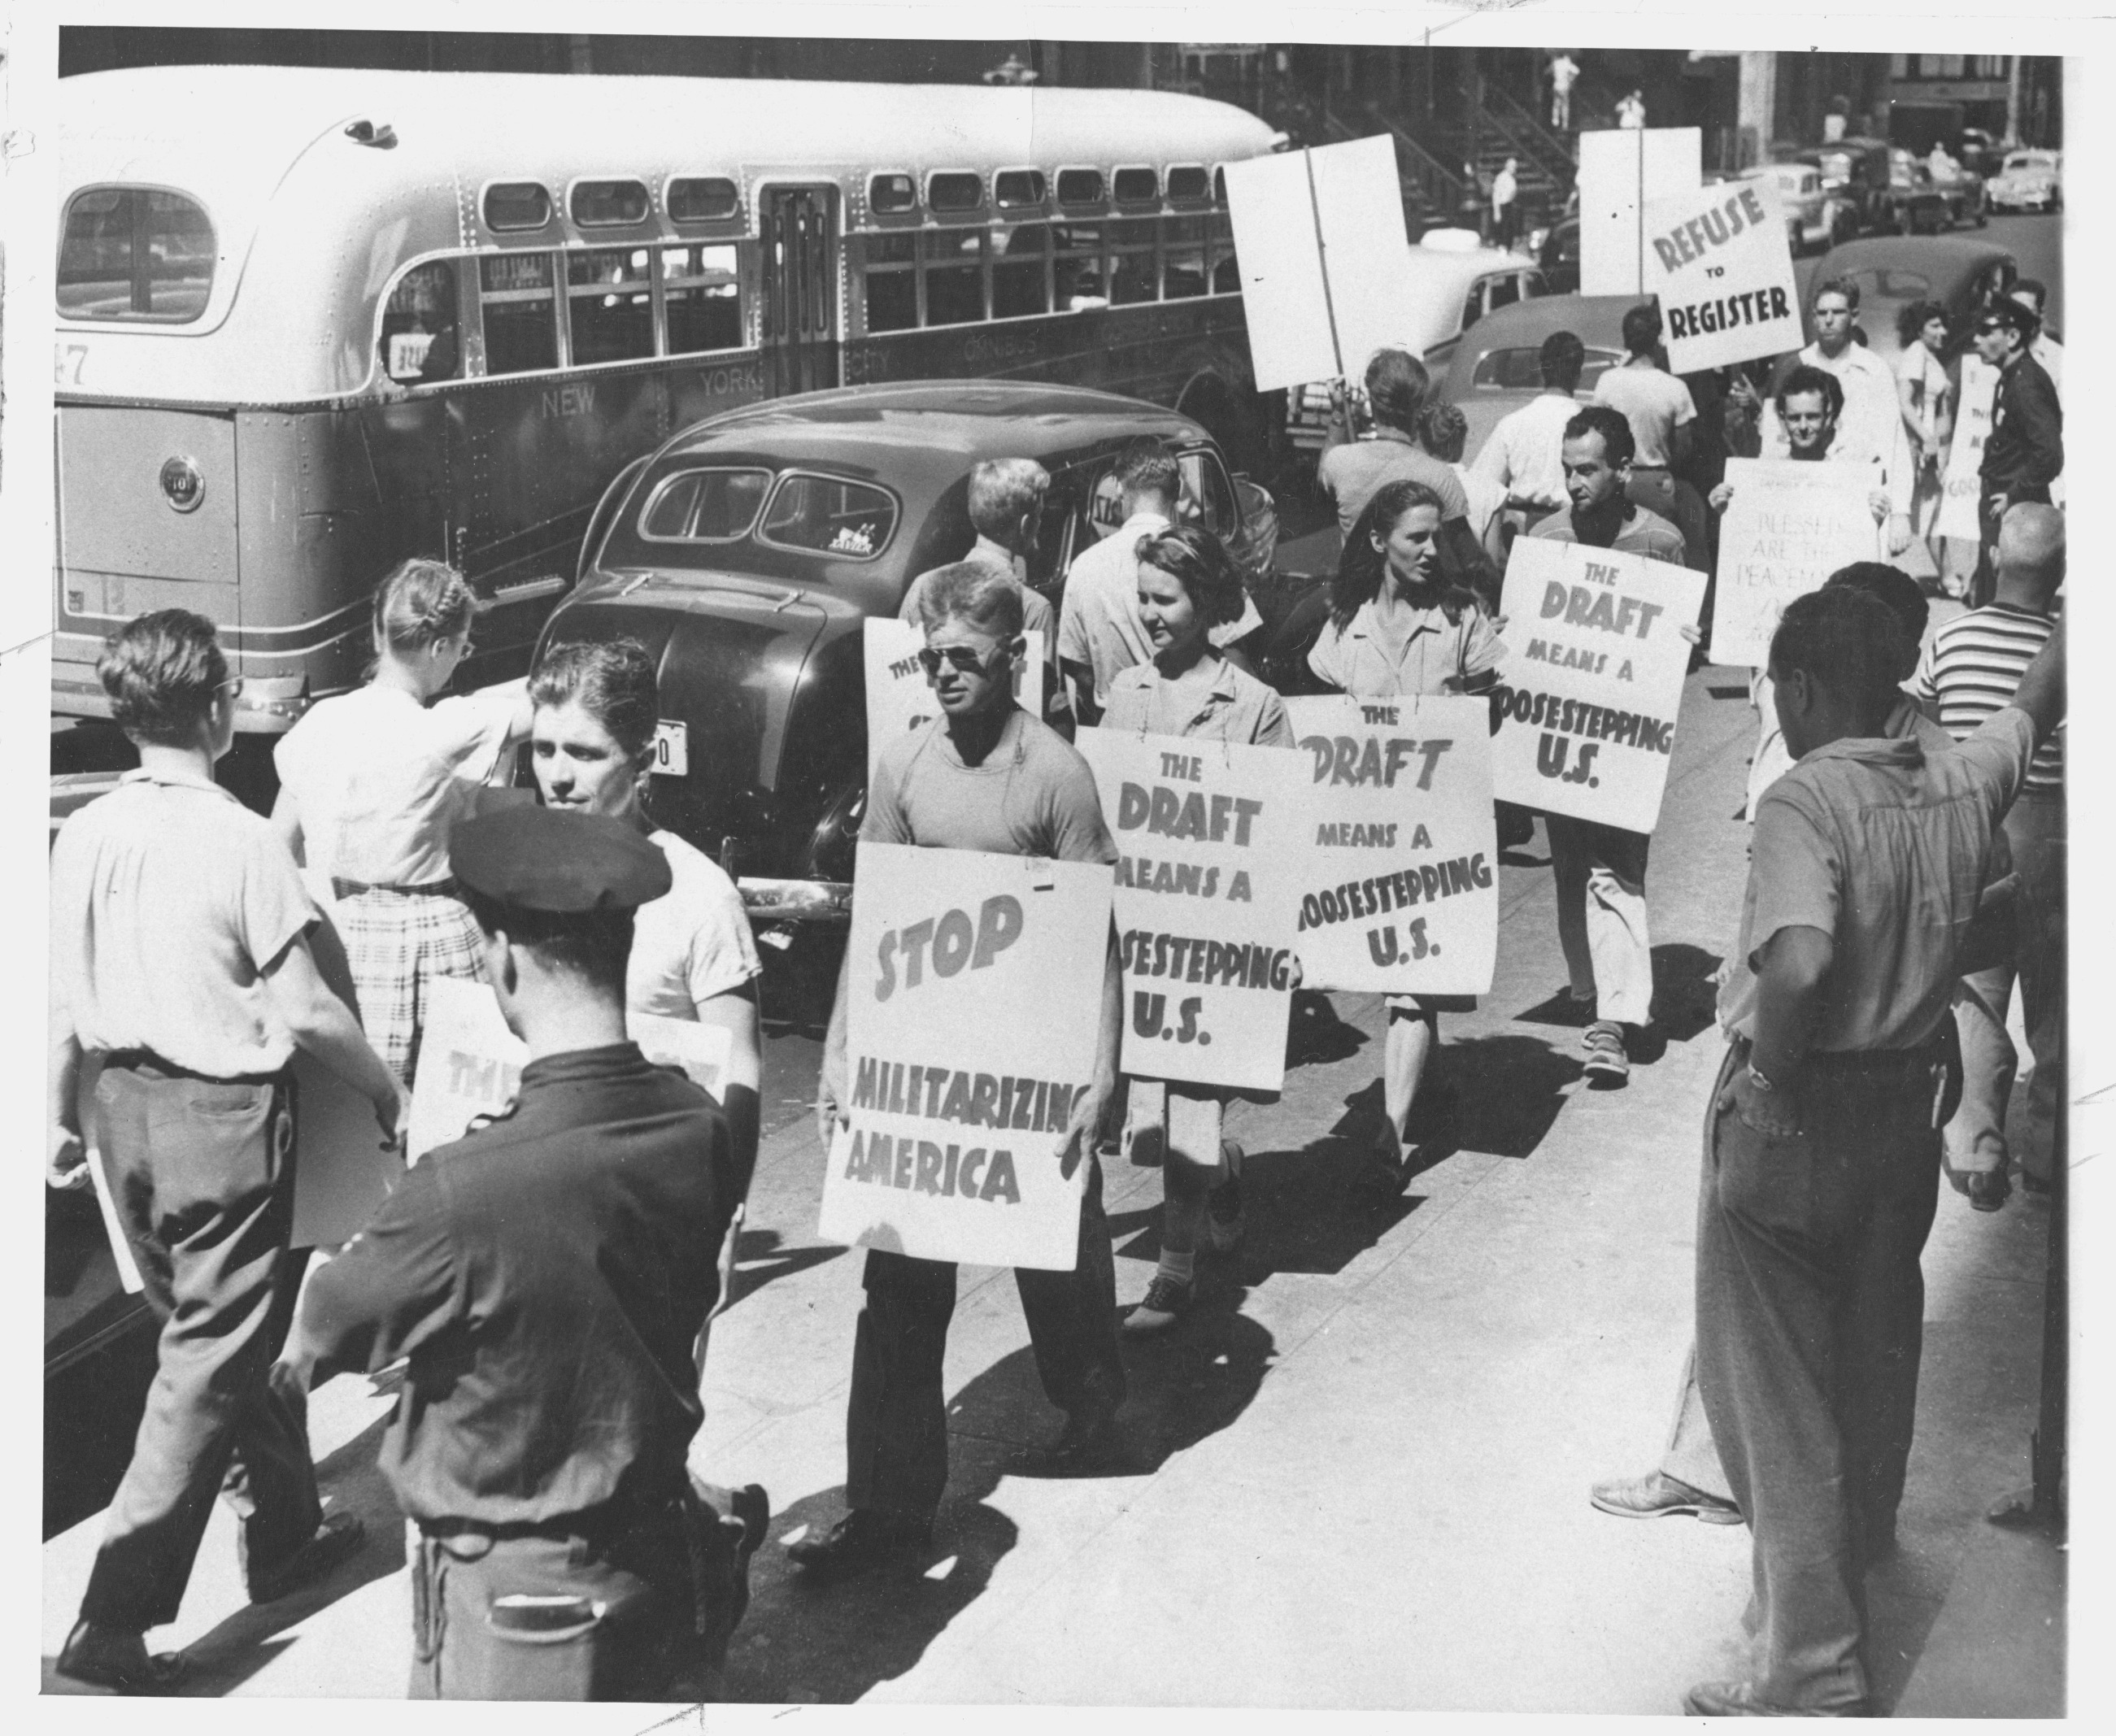 World War II-era anti-draft protest (FOR Archives)